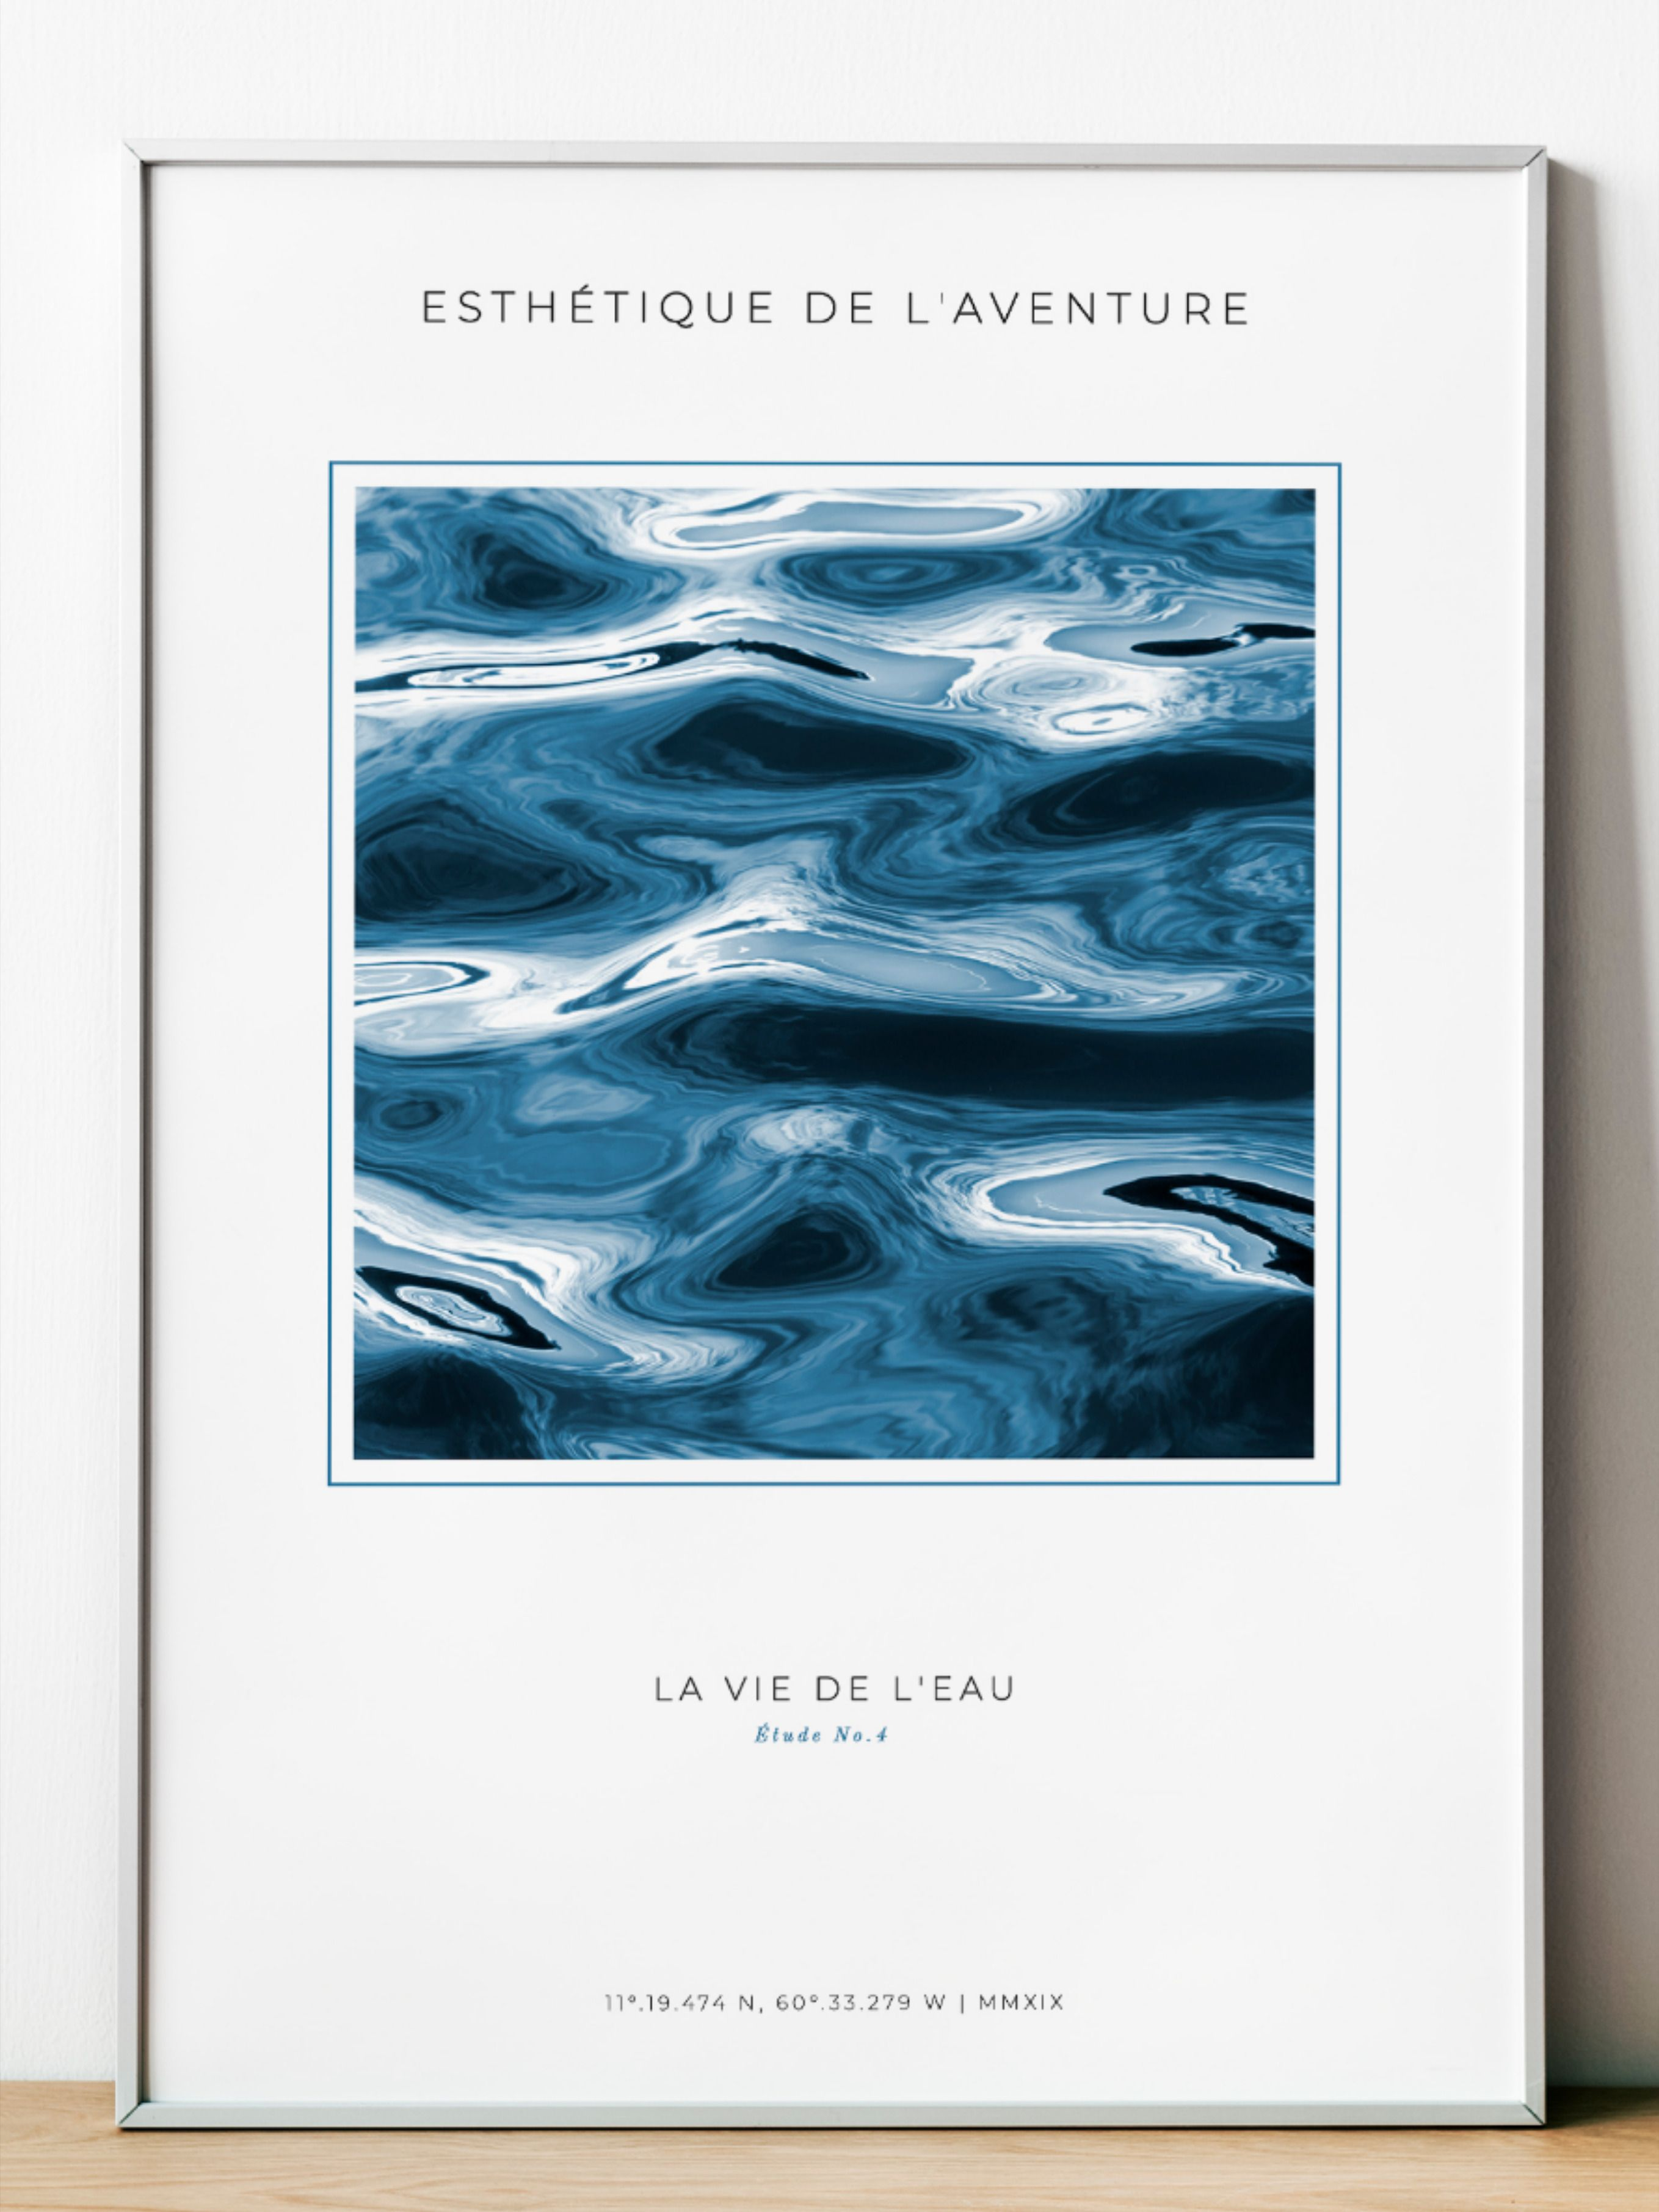 Esthétique de l'aventure. The Aesthetics of Adventure. This is a new collection where wind meet waves in an eternal improvisation. These are subtle glare, sudden flashes and bizarre bends. It is an abstraction of neutral colors and the muted tones of Natural Fractal Patterns. Fractal Patterns in Nature and Art Are Aesthetically Pleasing and Stress-Reducing. #NeutralAbstract #NaturalPatterns #ExibitionPoster #MuseumPoster #NeutralColor #BlueDecor #ColorTrends2021 #OrganicArt #PantoneClassicBlue